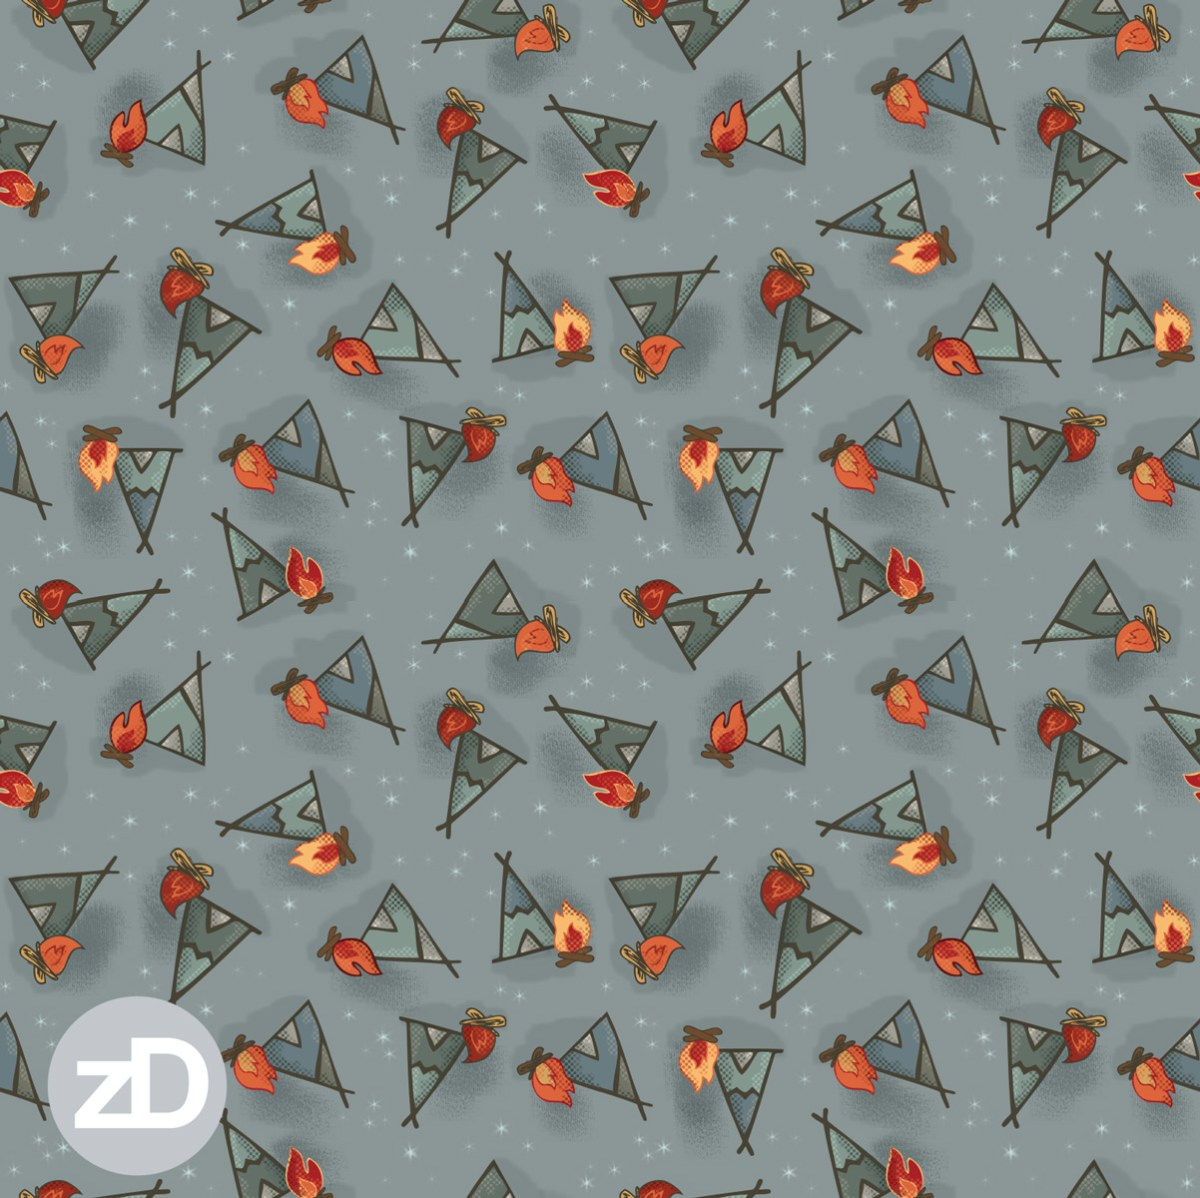 Zirkus Design | Cody Arizona Wild West Pattern Collection : TeePees Tipis + Campfire Fire Under the Stars